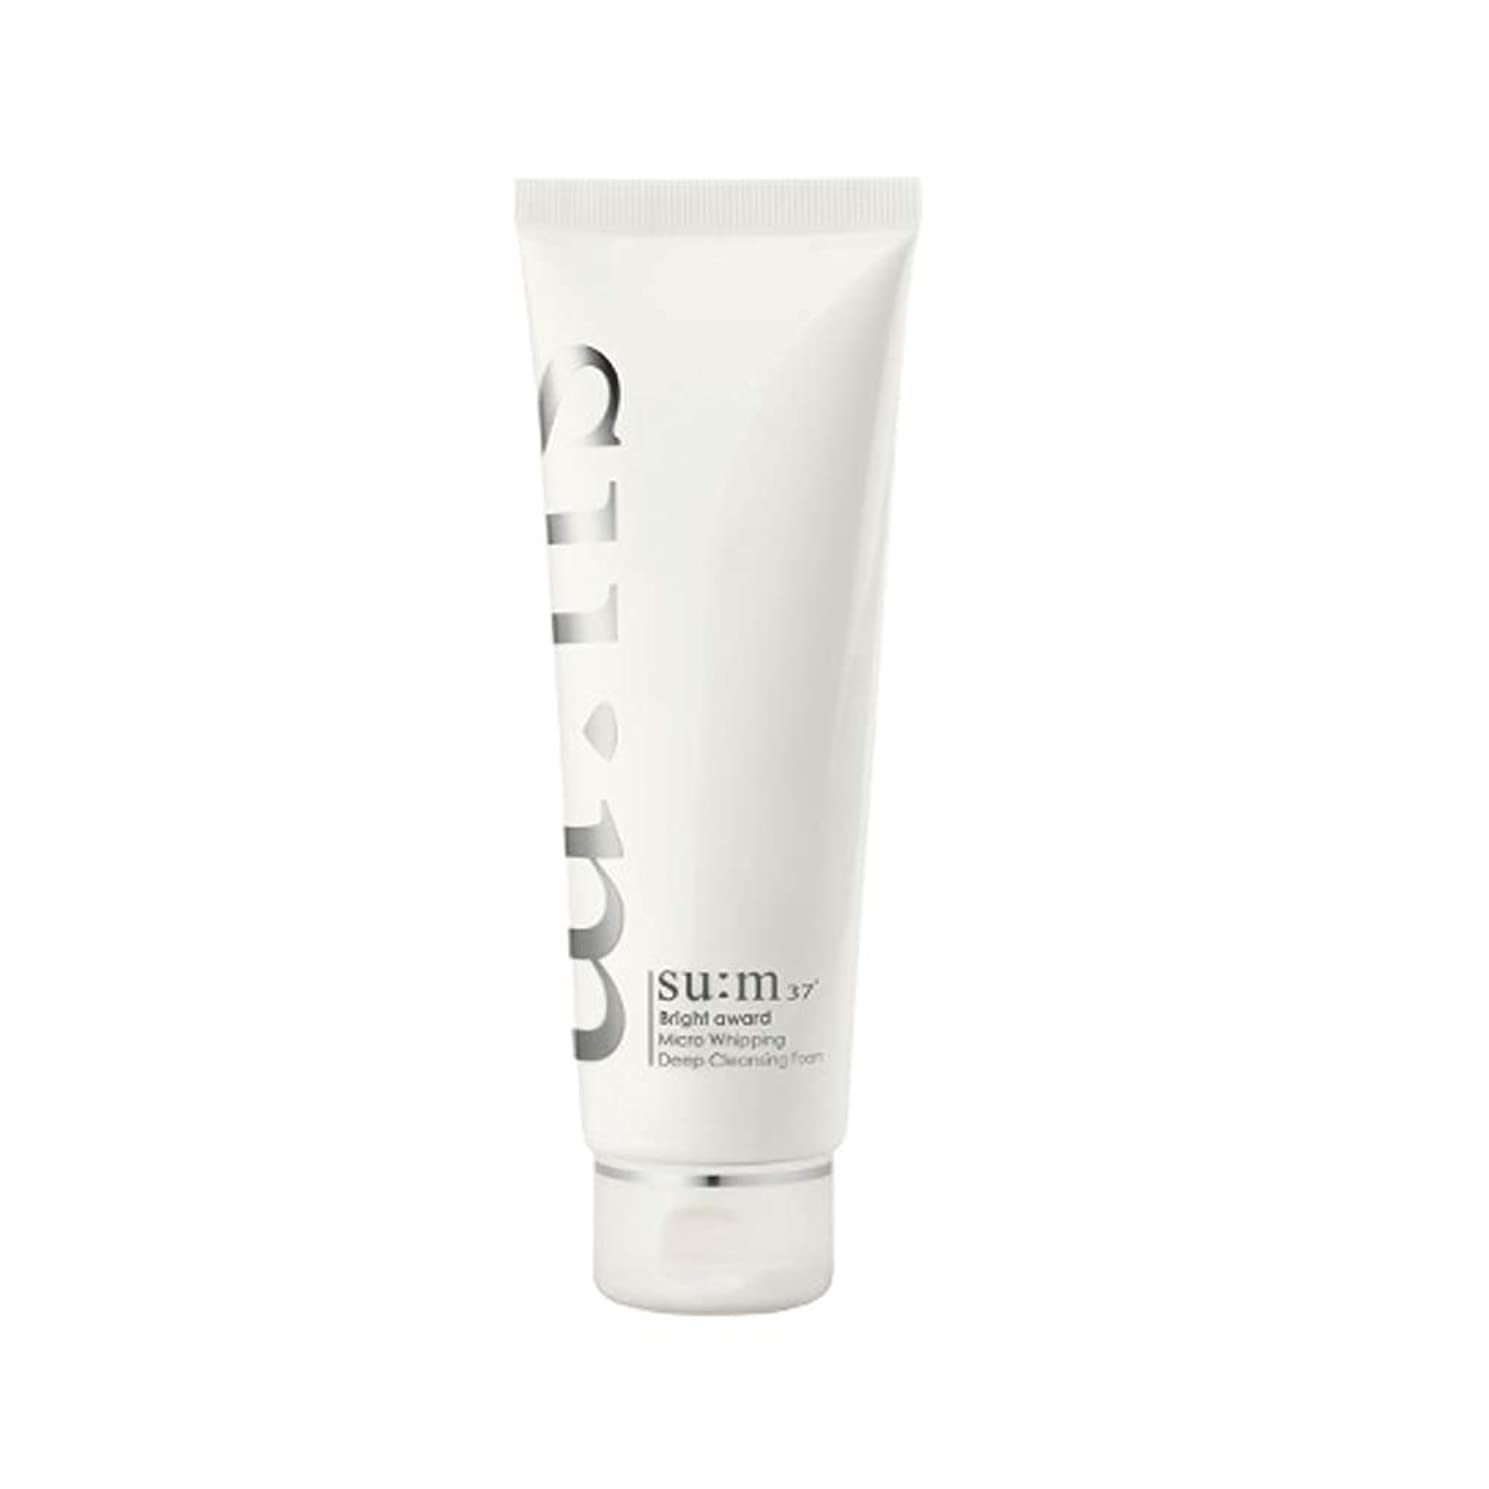 知事文庫本地殻[su:m37/スム37°] SUM37 Bright Award Micro Whipping Deep Cleansing Foam(並行輸入品)